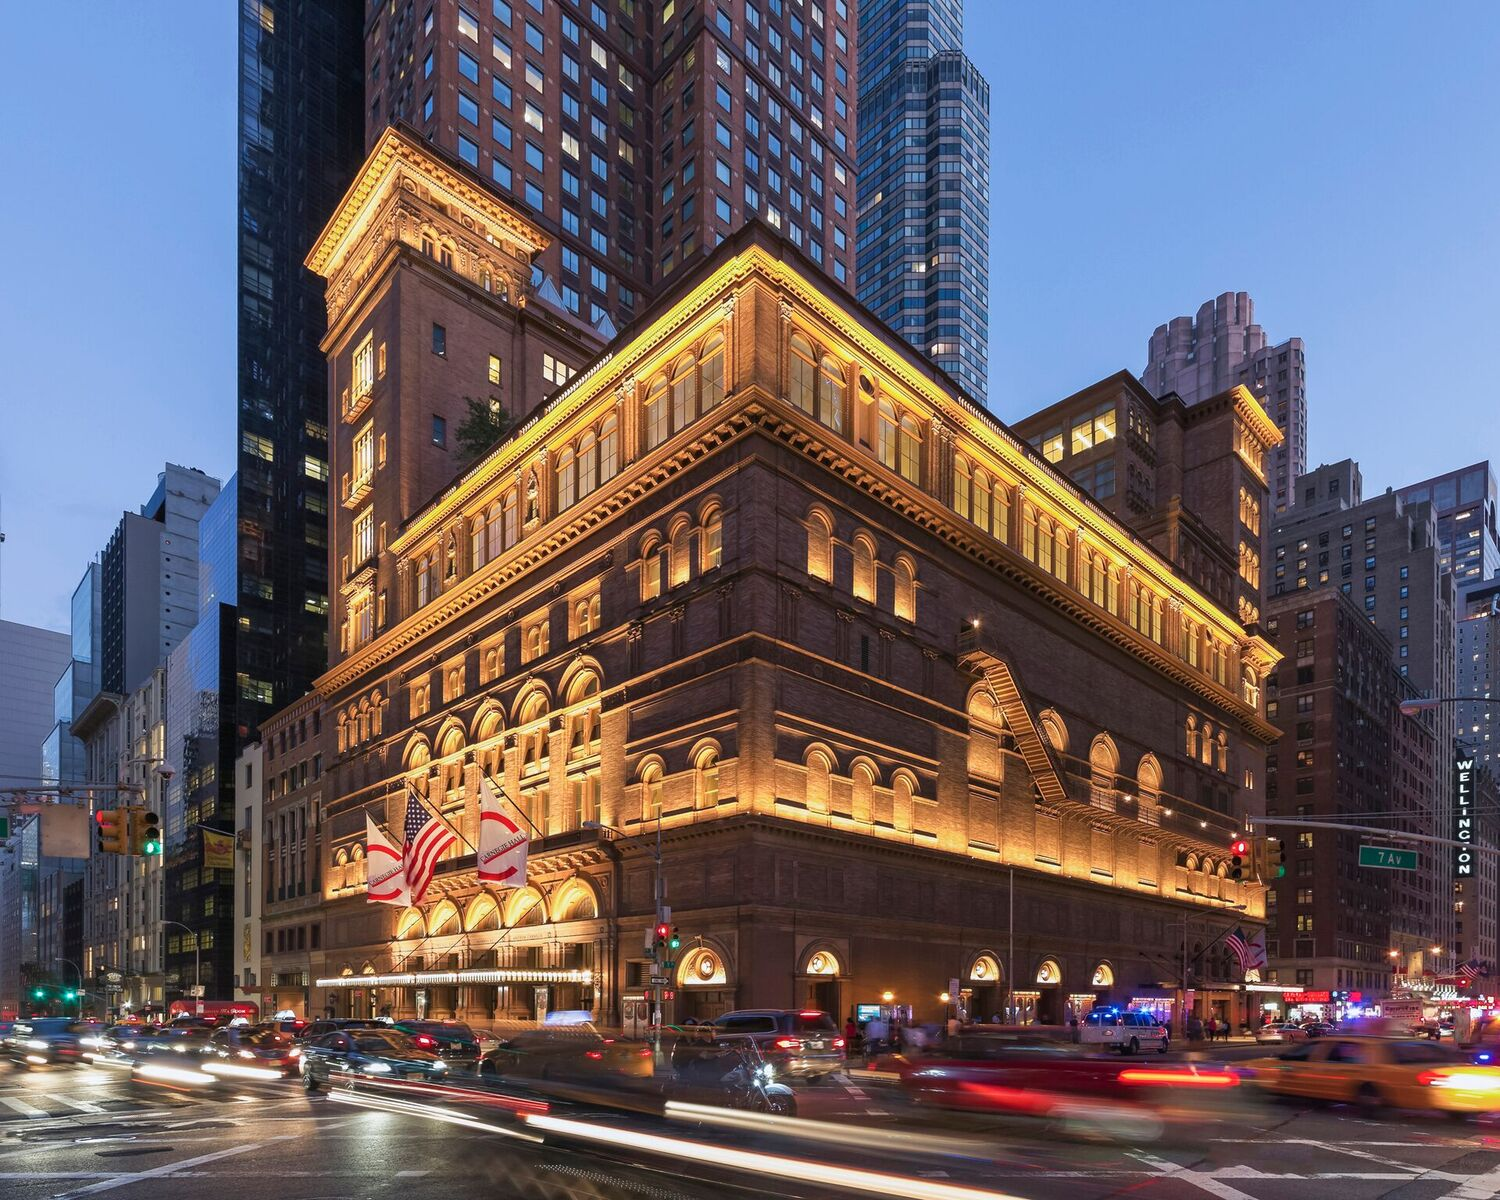 Carnegie Hall Studio Towers Renovation Project by Iu + Bibliowicz Architects; Jeff Goldberg